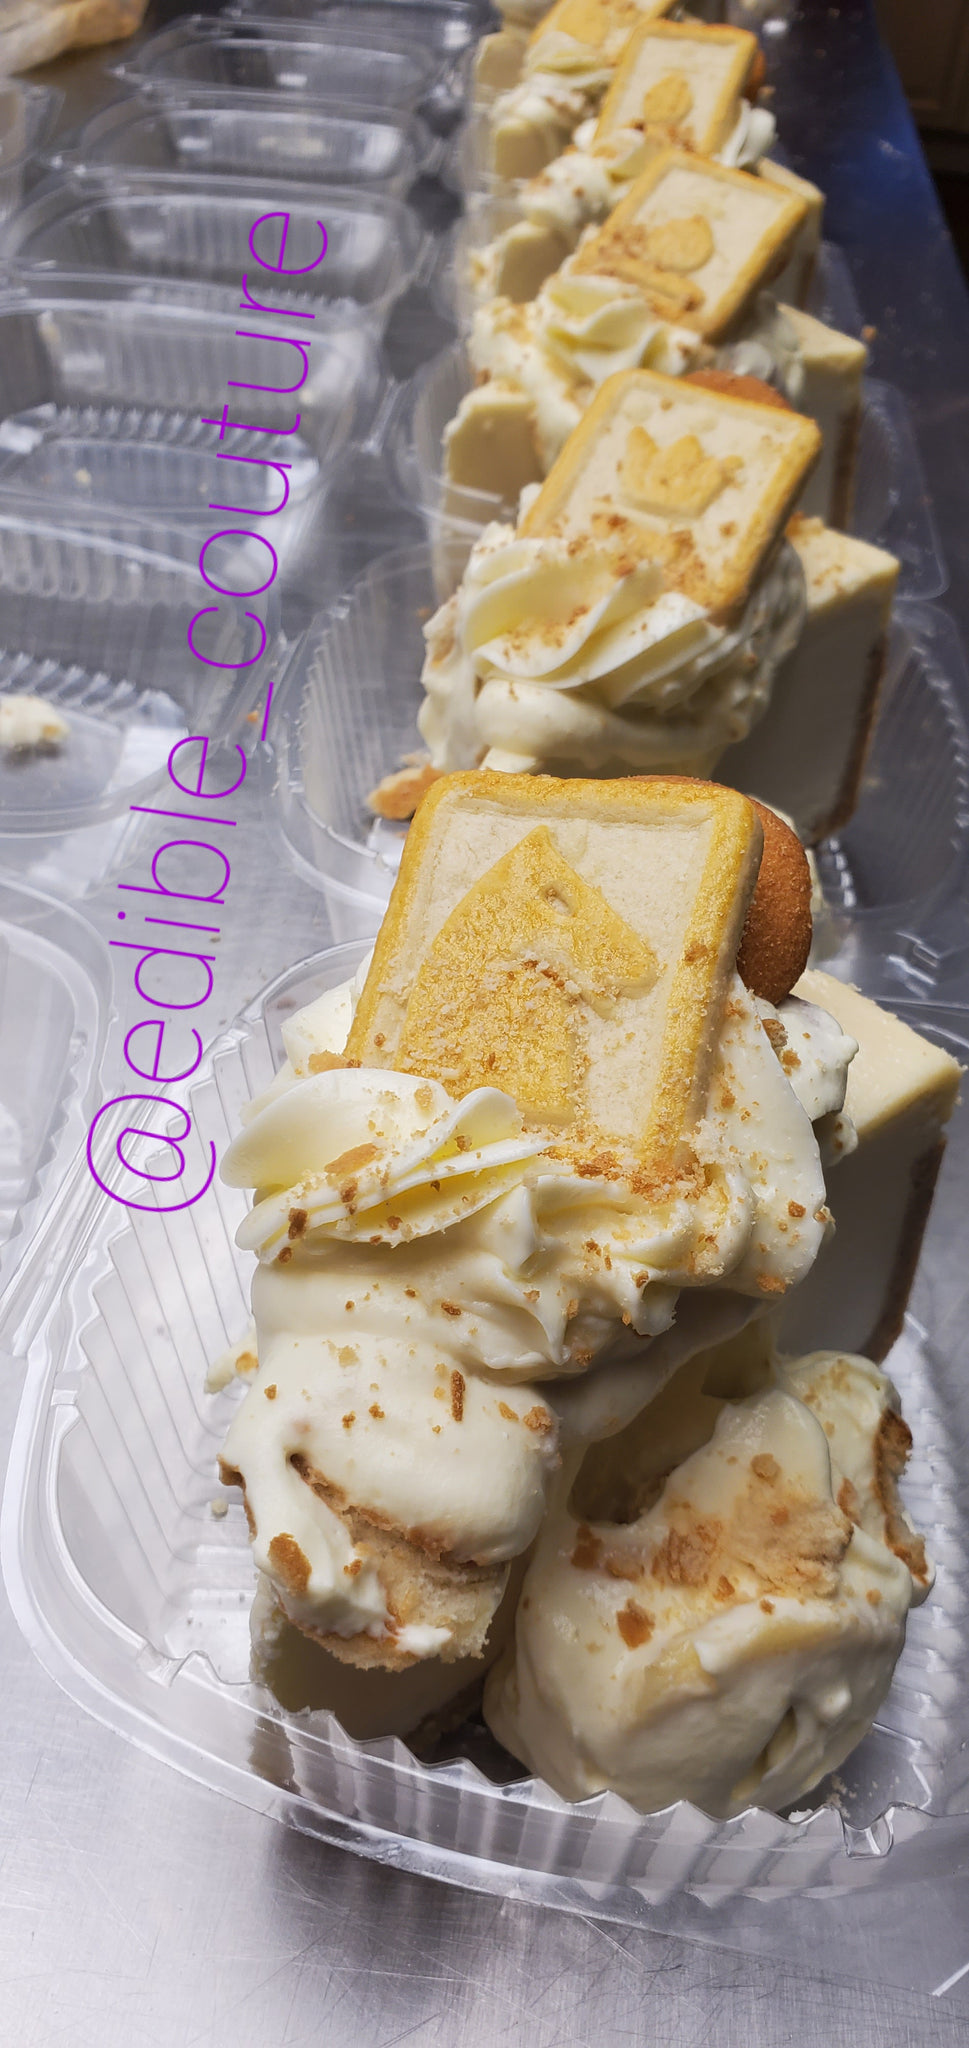 Banana Pudding Cheesecake Slice( PREORDER ONLY)